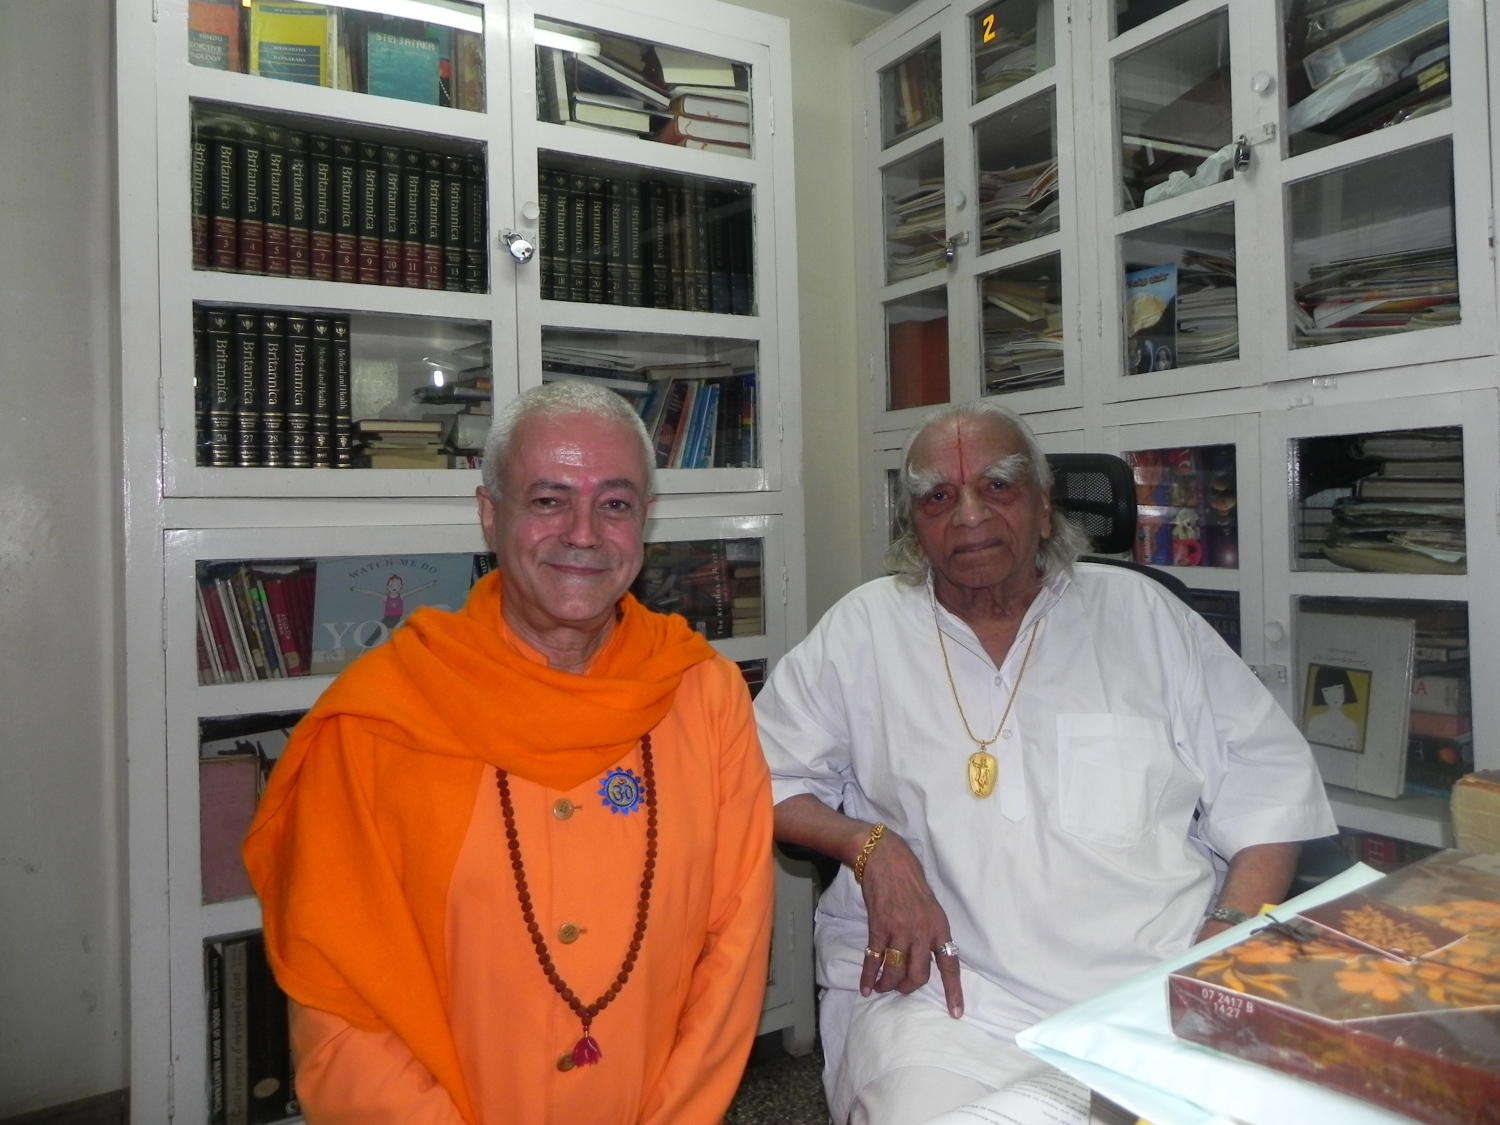 Meeting of H.H. Jagat Guru Amrta Súryánanda Mahá Rája with H.H. B.K.S. Iyengar Jí Mahá Rája  - Pune, India - 2011, October